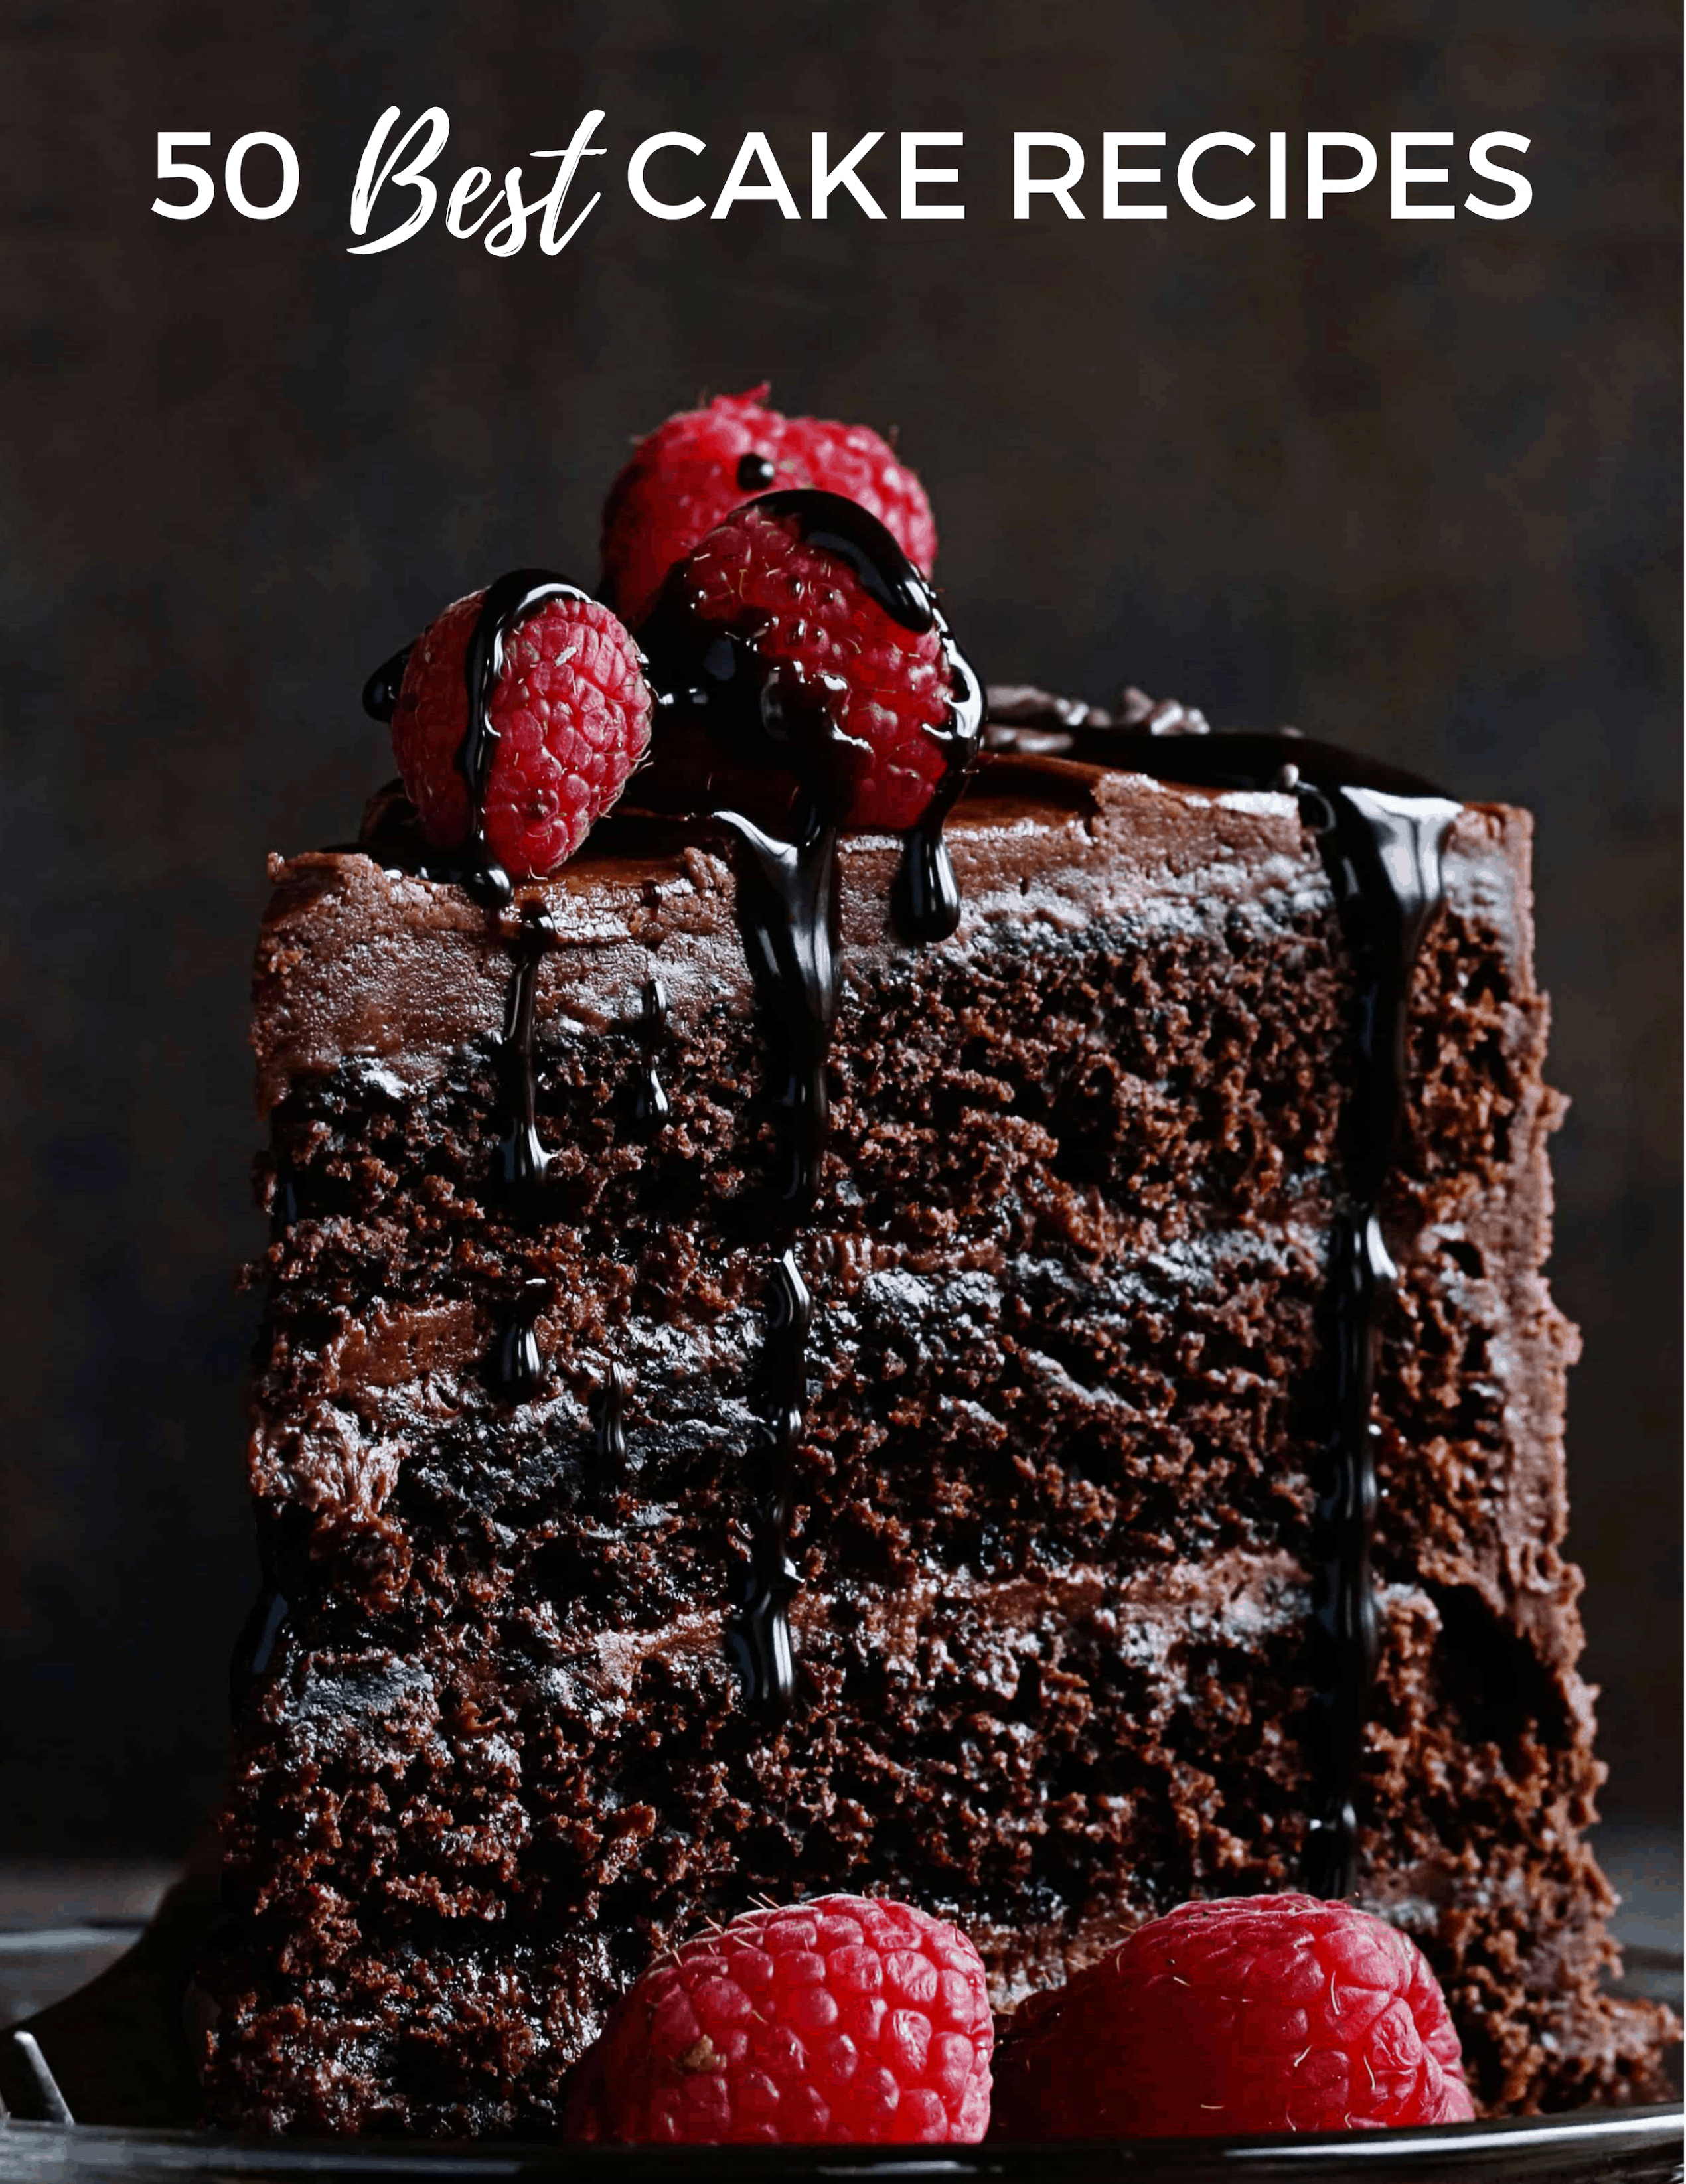 The 8 Best Cake Recipes in the World | i am baker - Cake Recipes